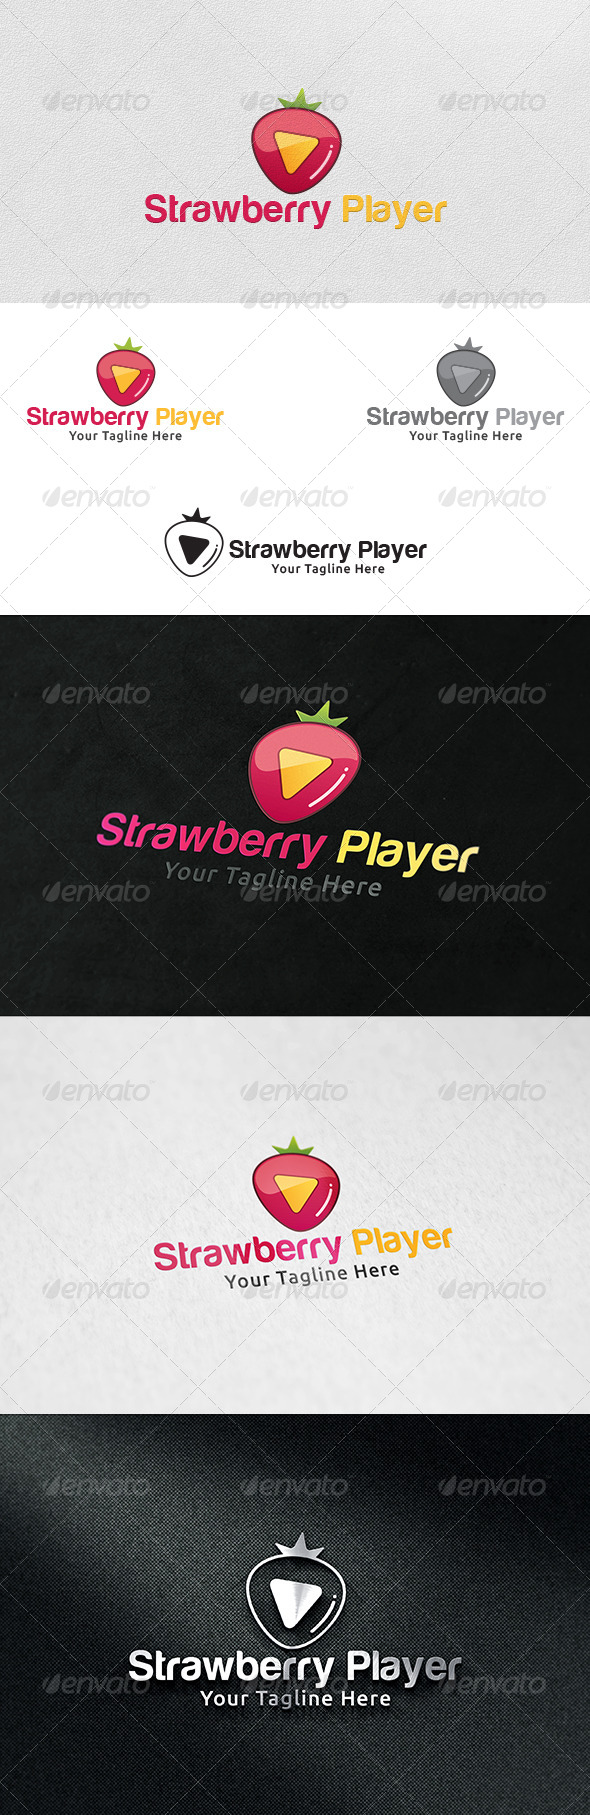 Strawberry Player - Logo Template - Food Logo Templates